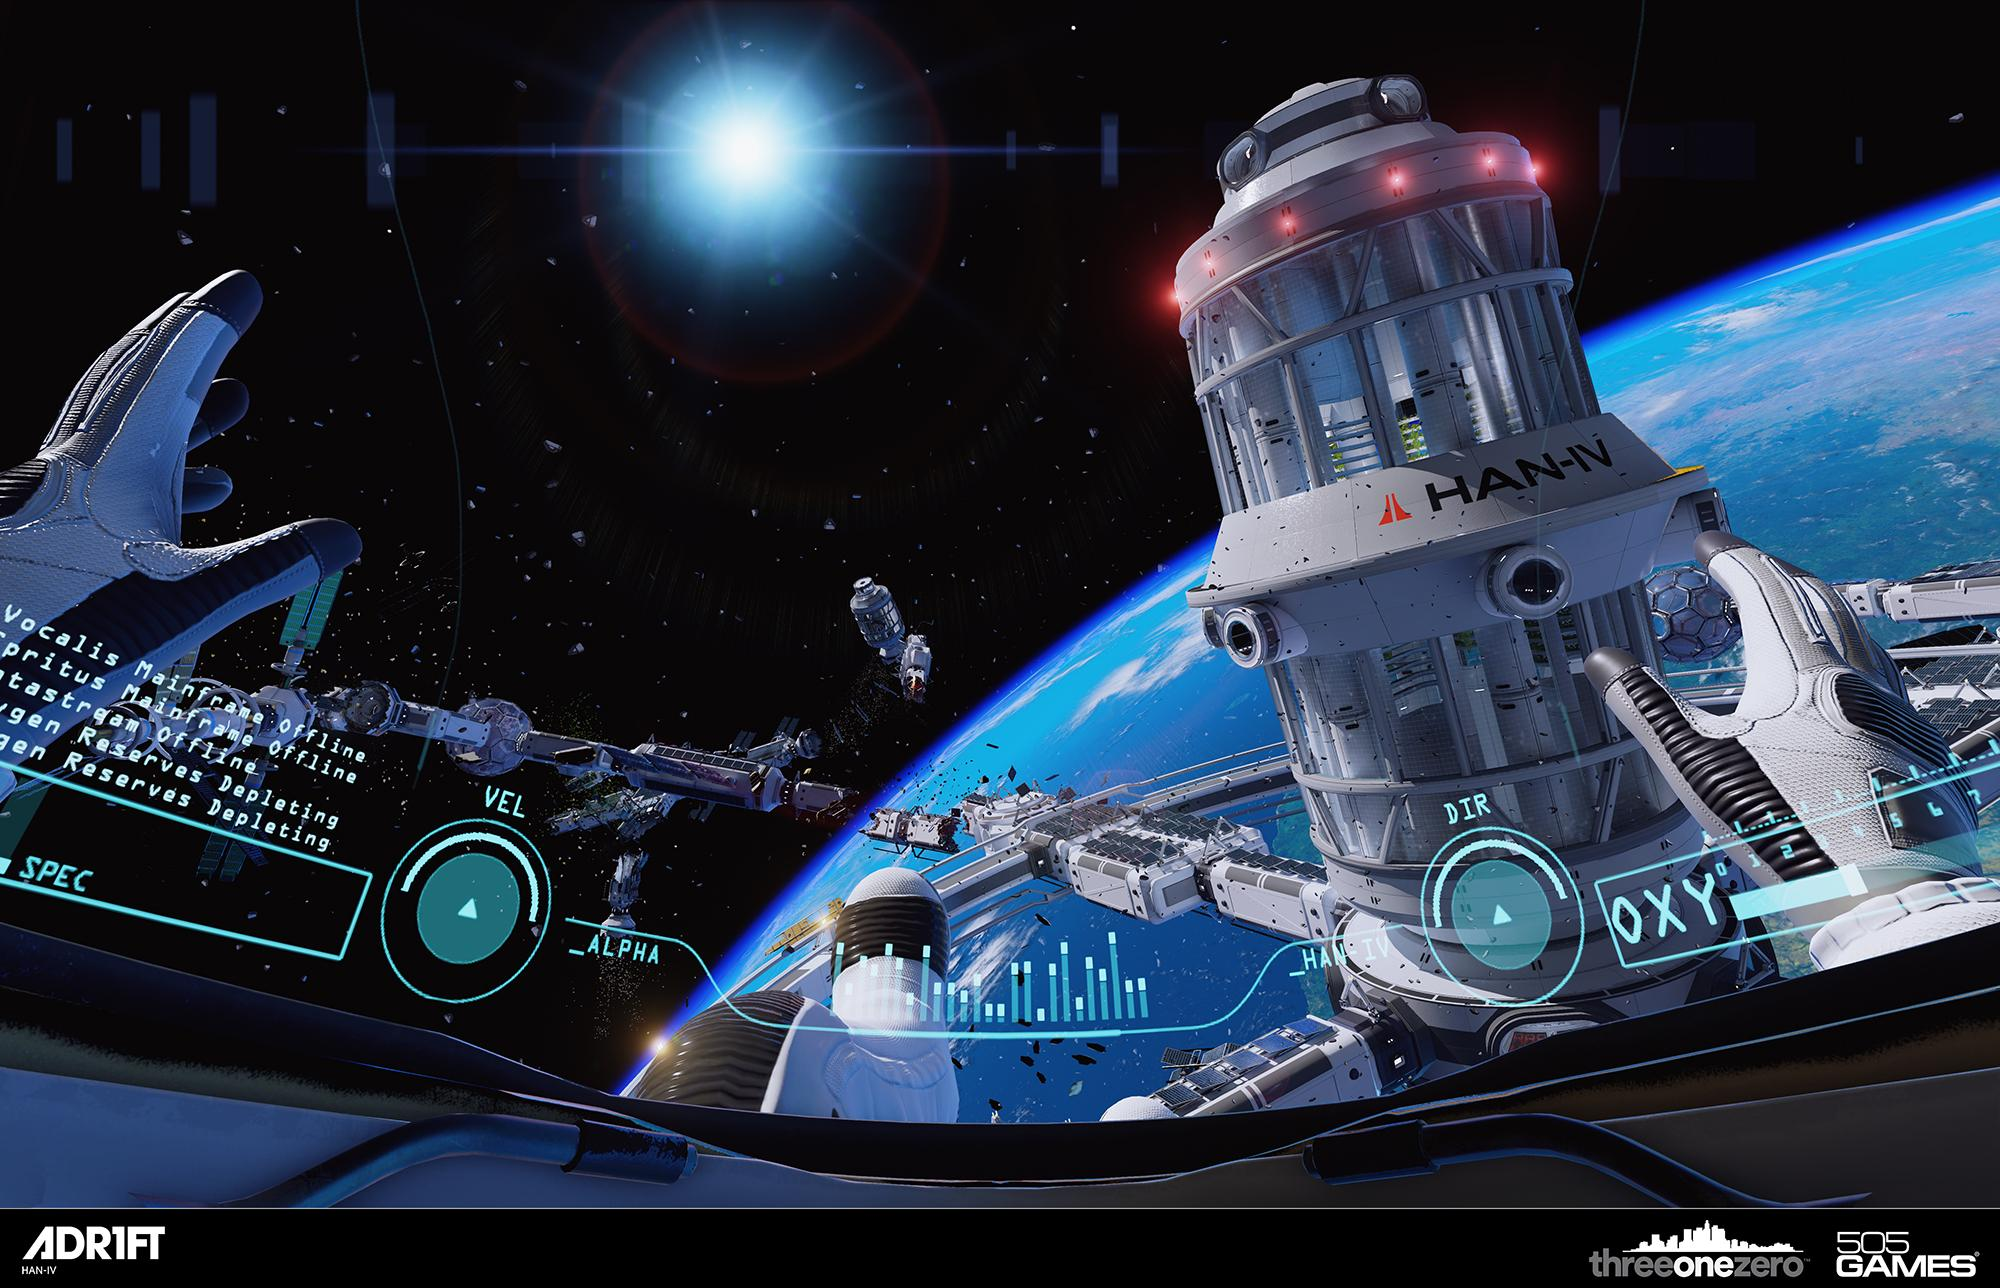 ADR1FT Screenshot 01